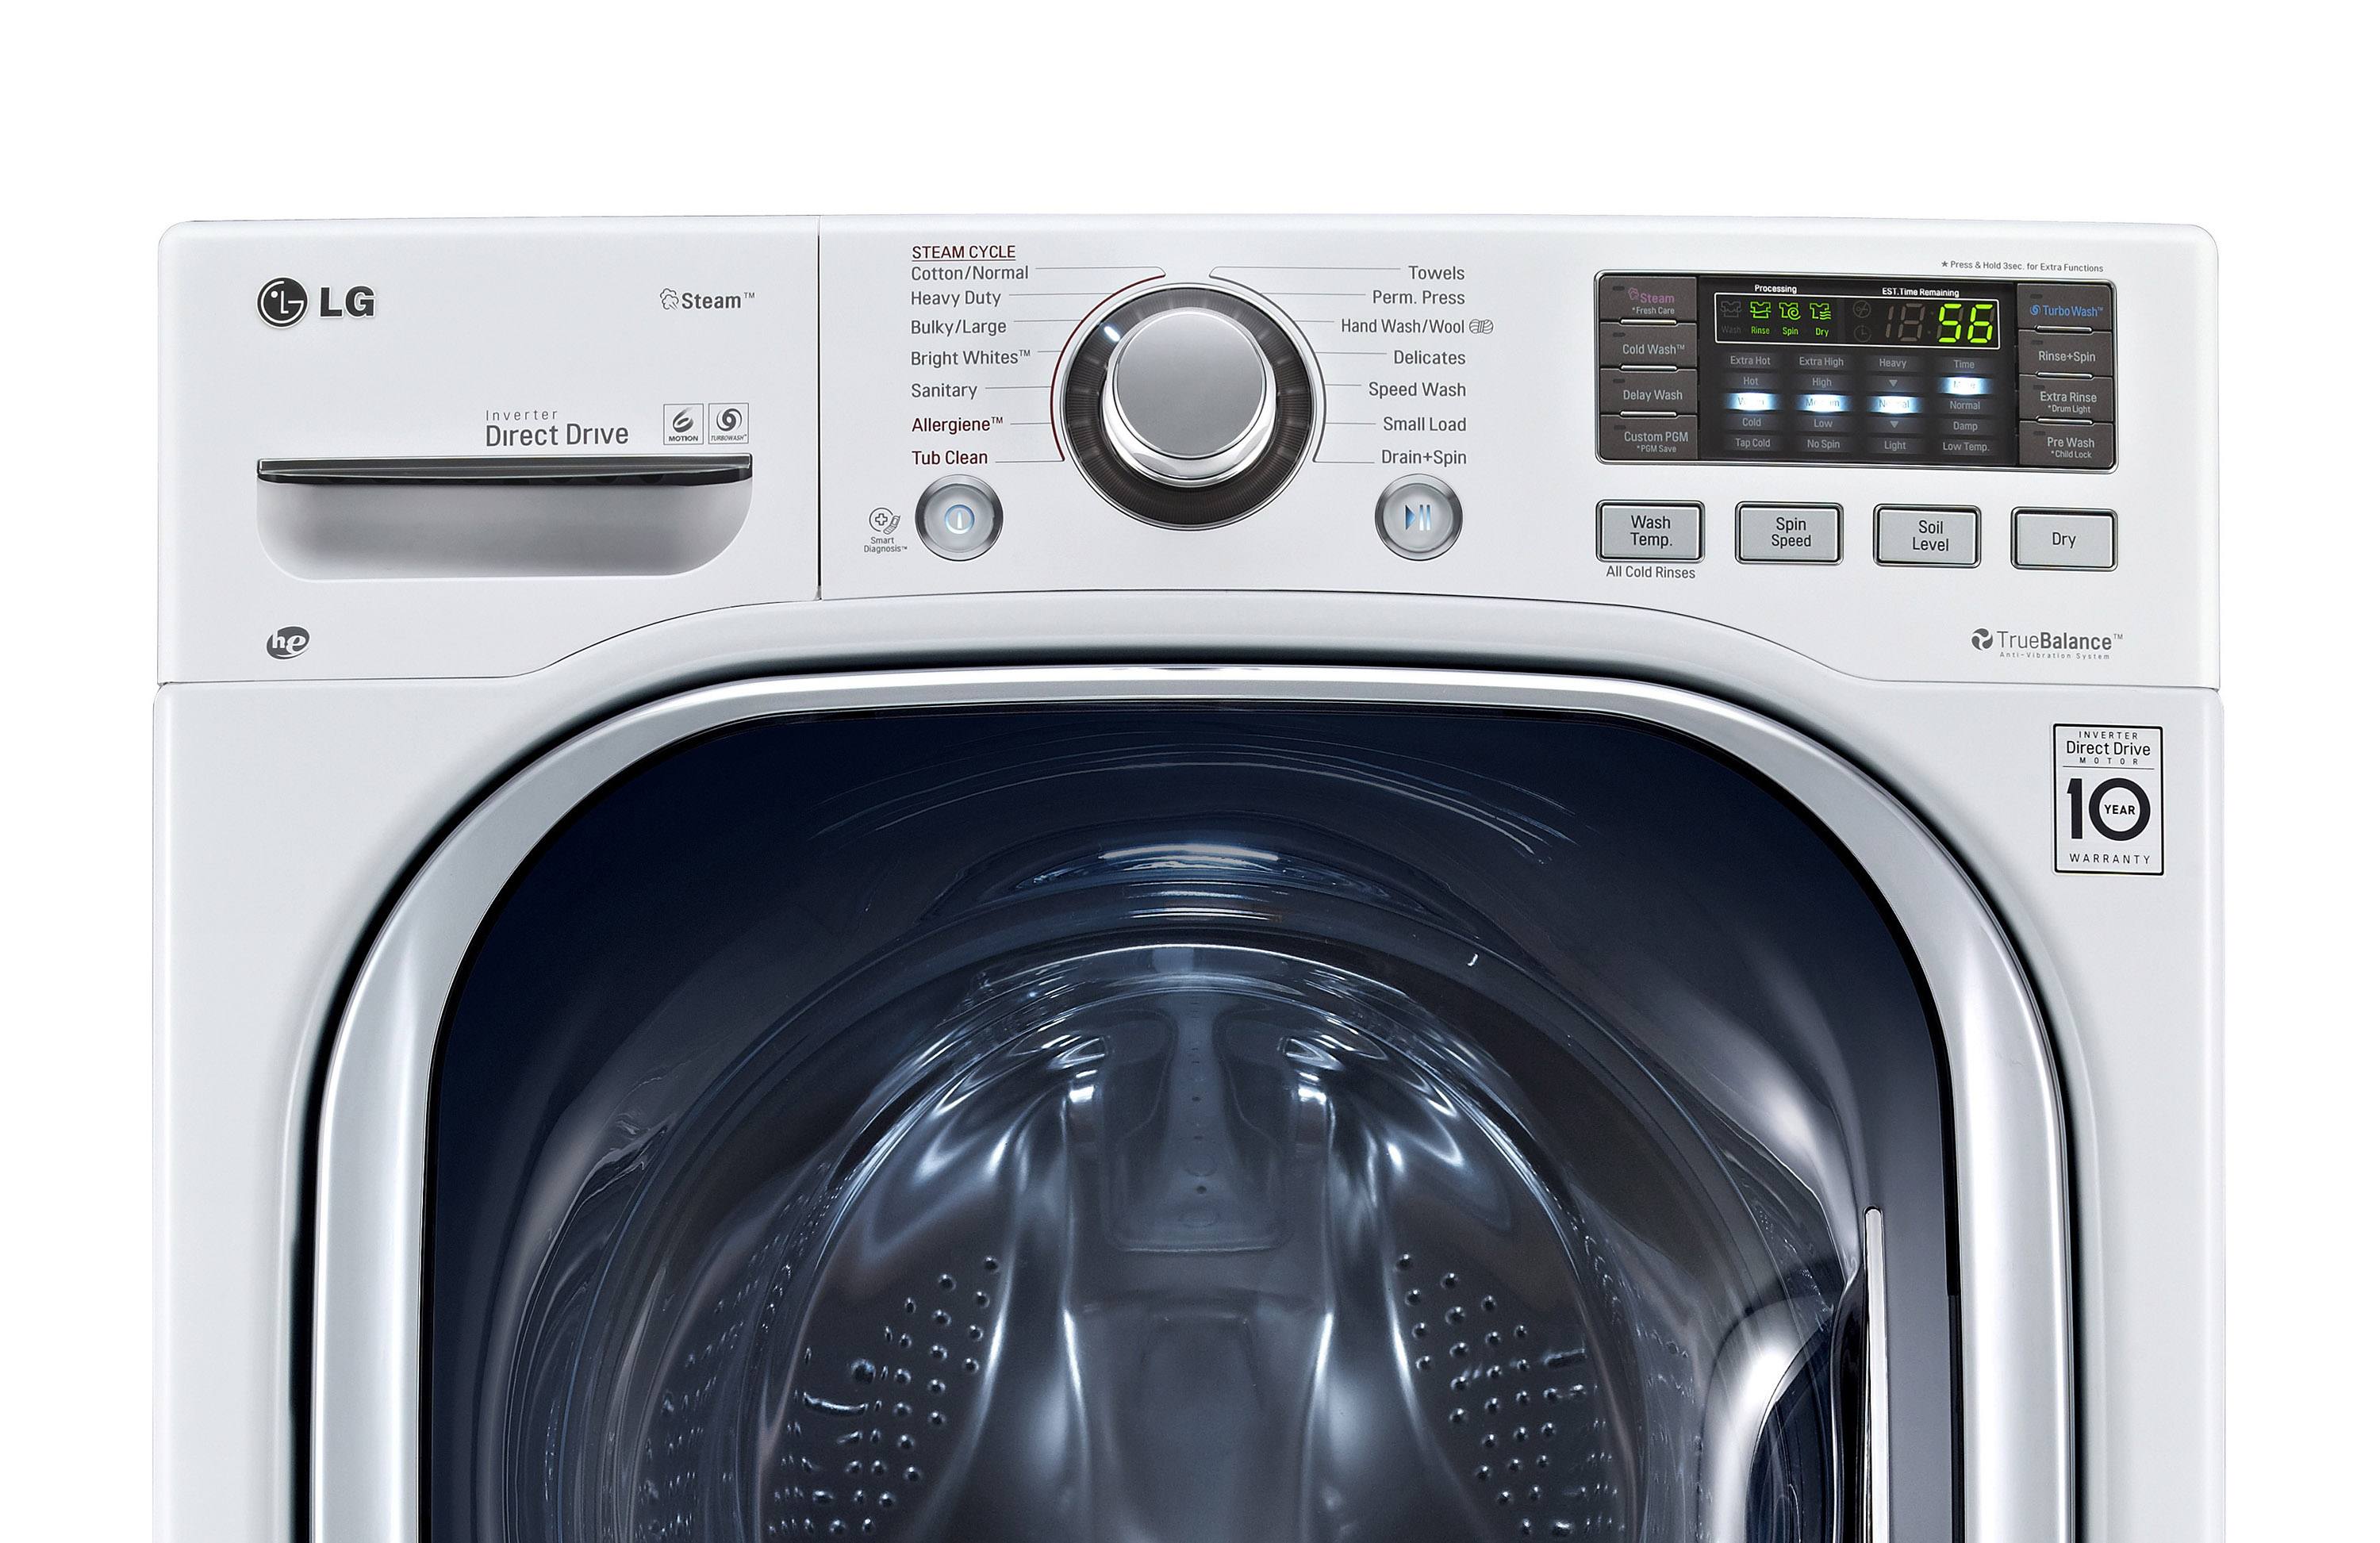 Lg all in one washer and dryer reviews - 732dc060df238f5ef573d70baa6baa7c_214179 732dc060df238f5ef573d70baa6baa7c_214180